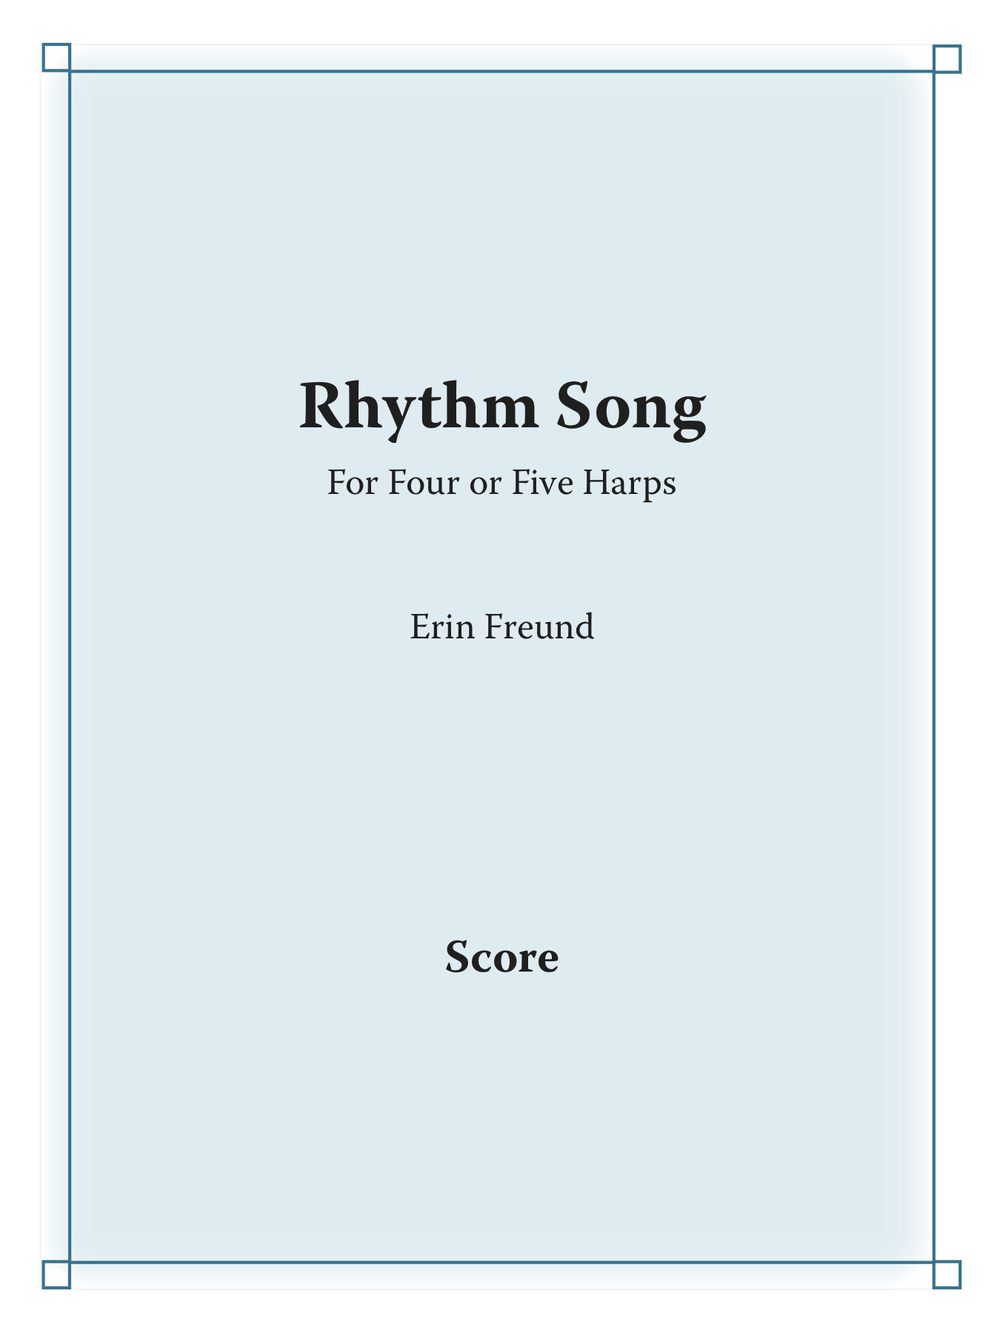 Rhythm song score cover.jpg